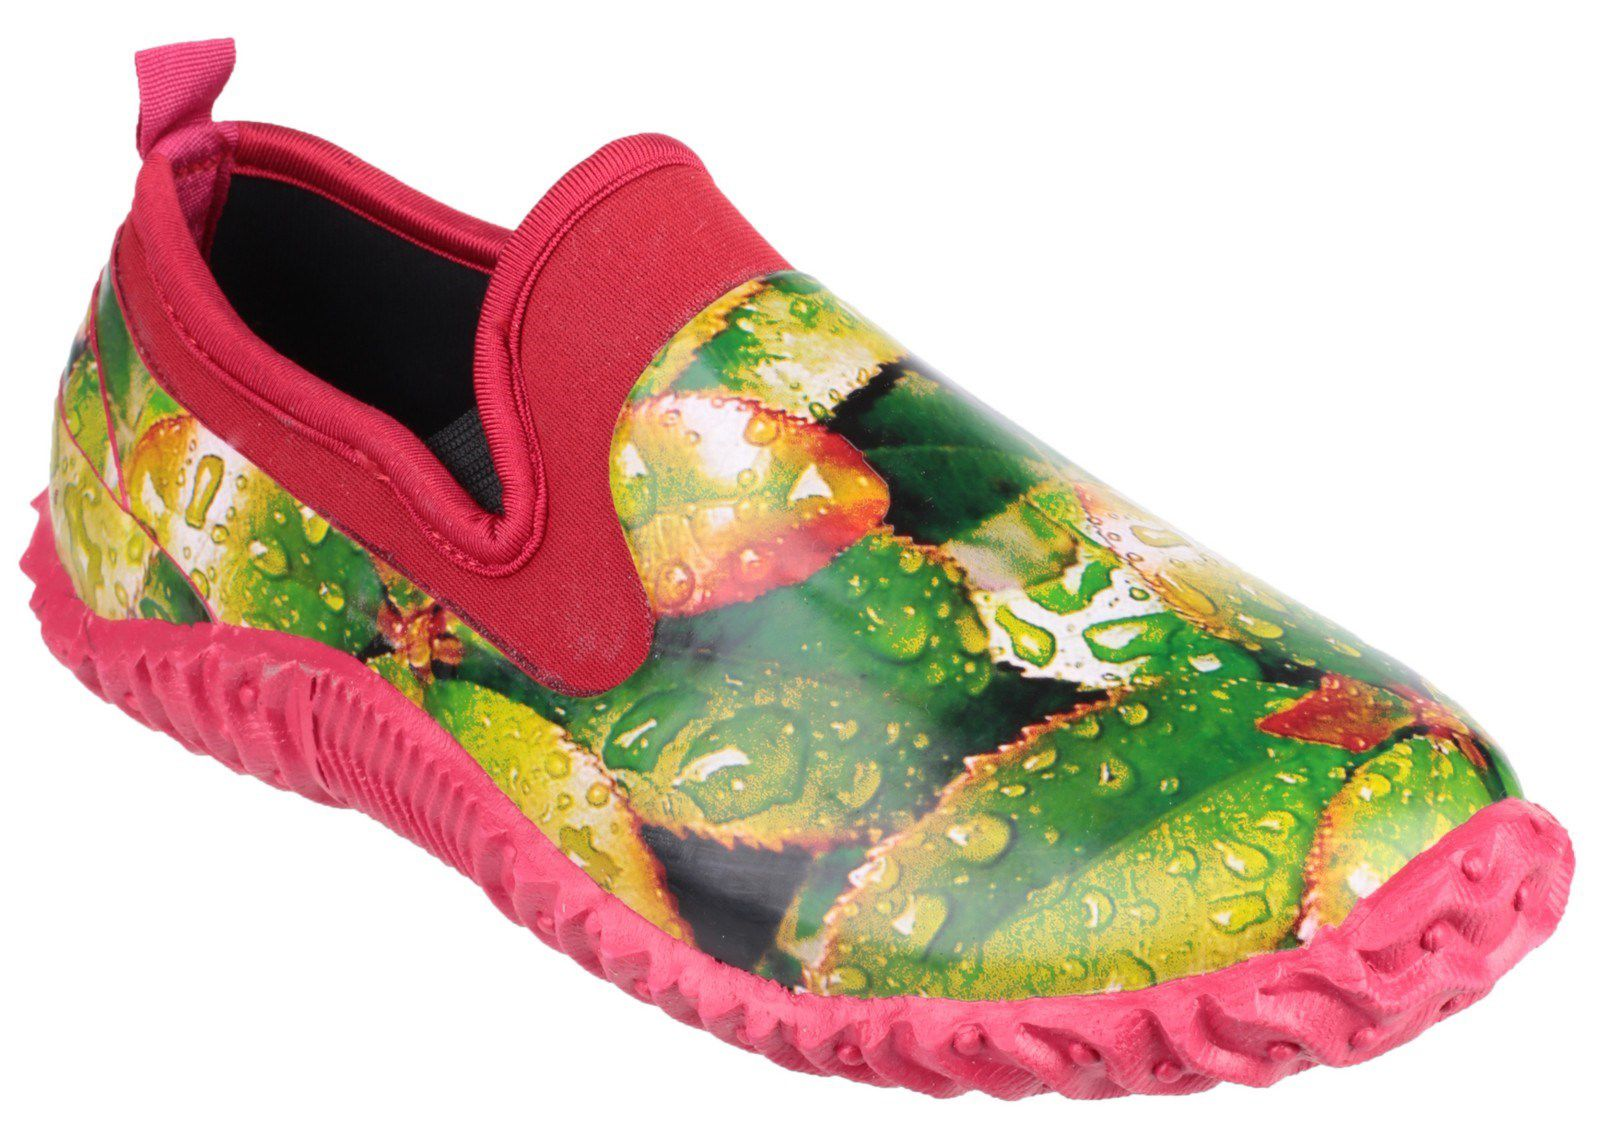 Cotswold Cotswold Tindal waterproof garden shoes, Autumn Leaf